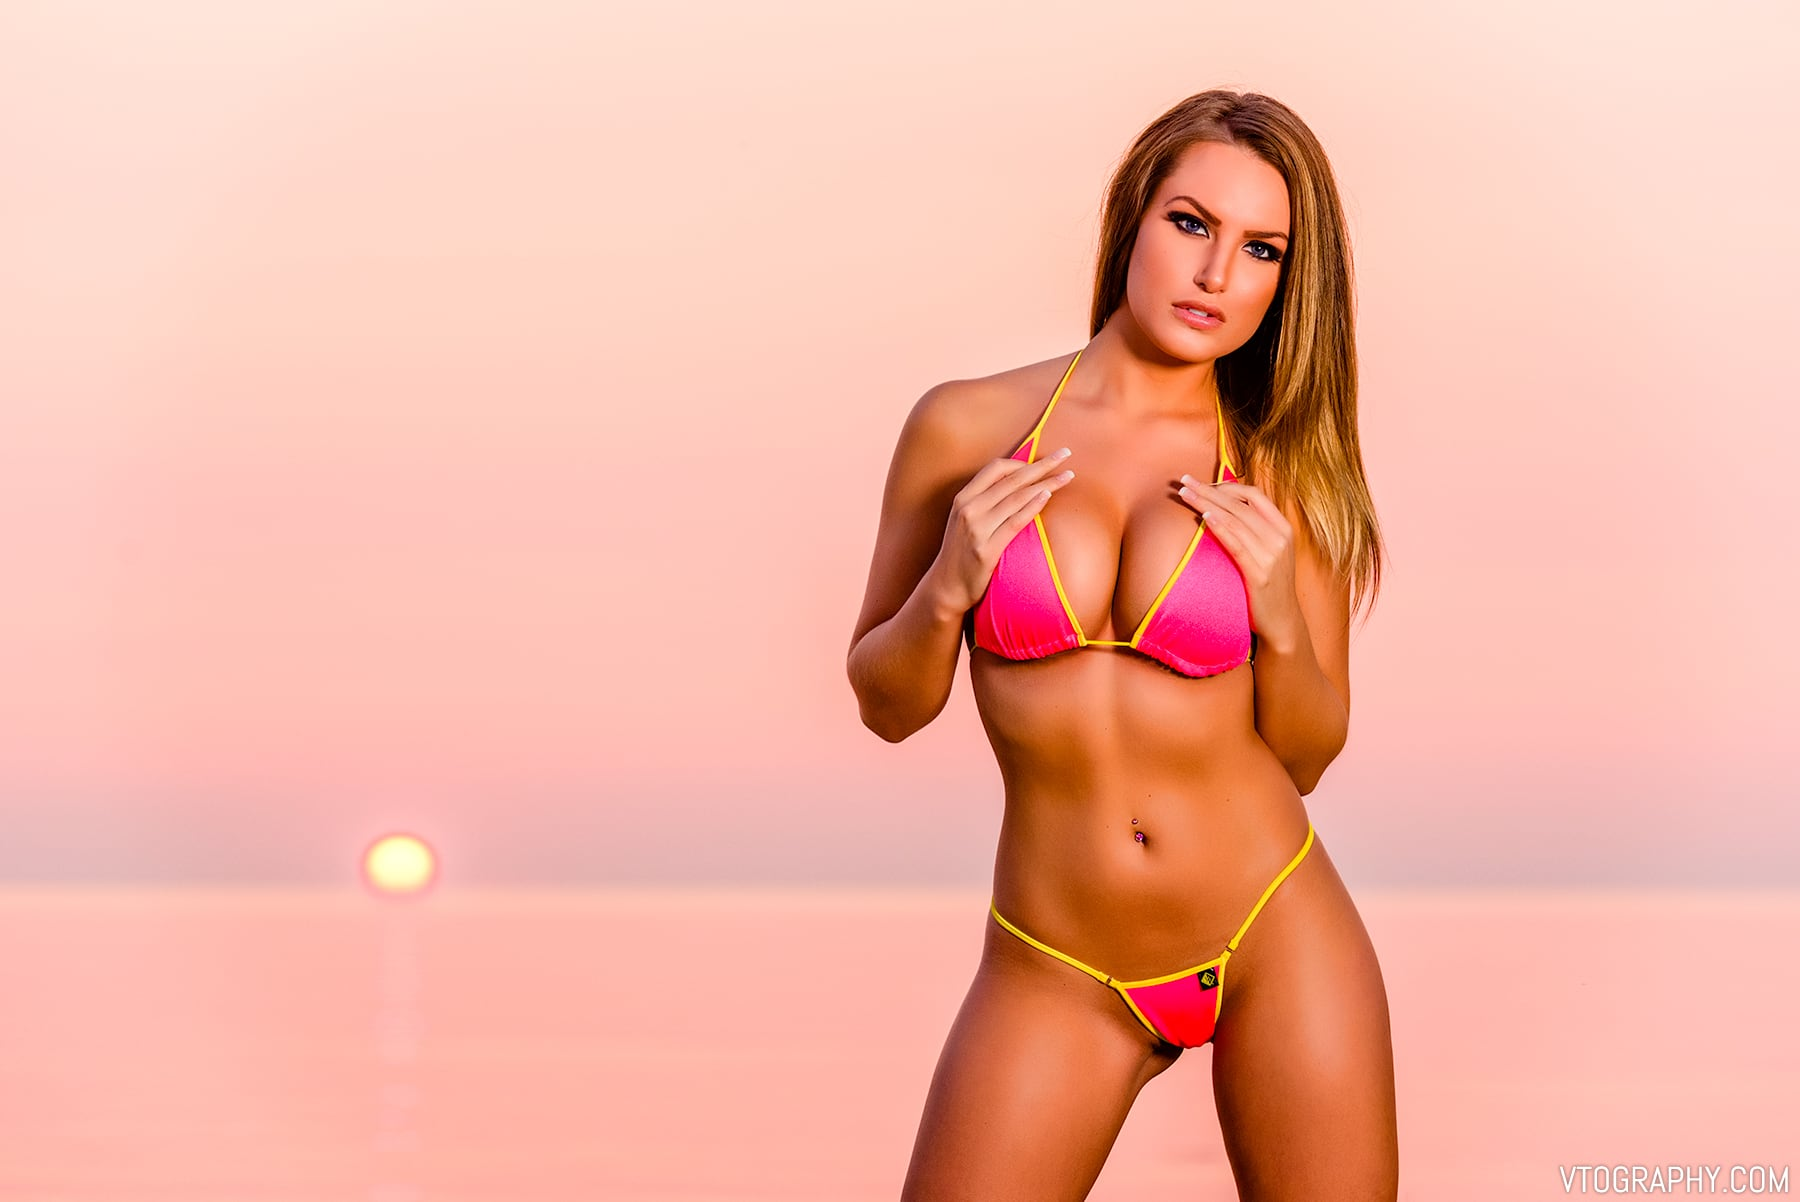 Bikini beach photo shoot with Samantha, photographed with Paul C. Buff Einstein monolight